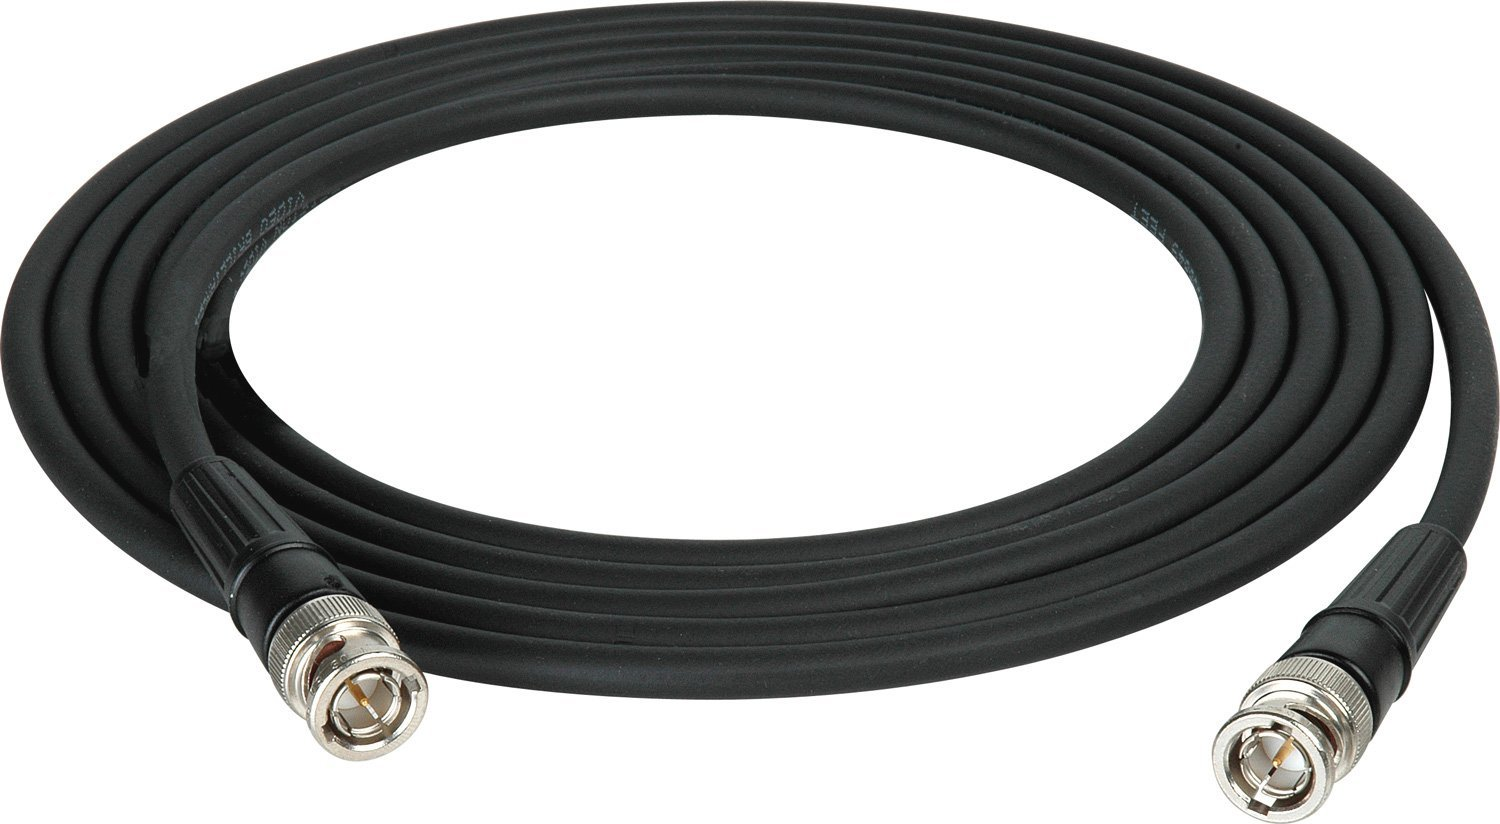 BELDEN 1505A 002500 COAXIAL CABLE, RG-59/U, 500FT, RED: Amazon.com: Industrial & Scientific